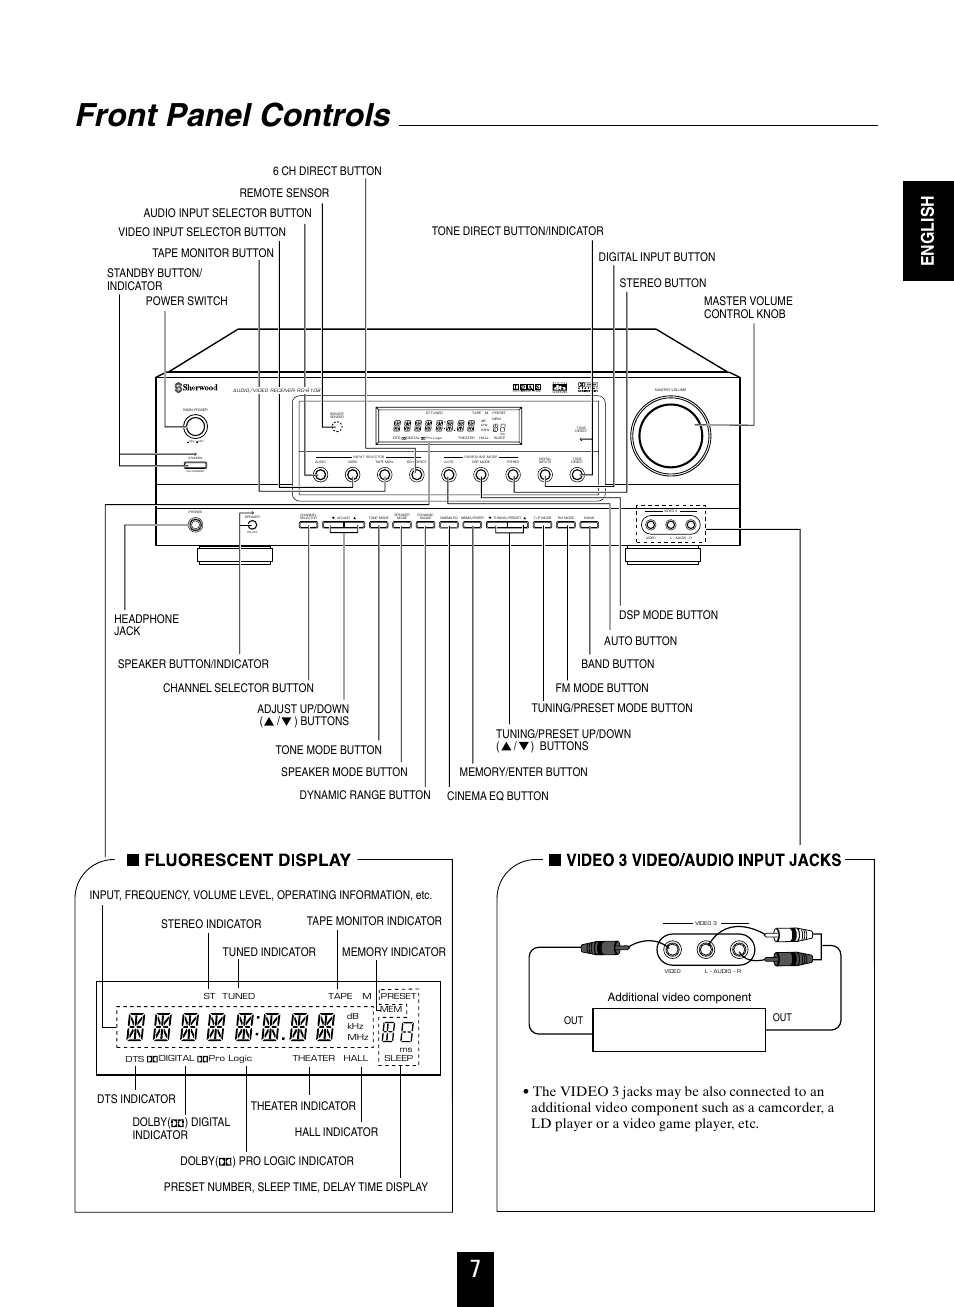 Front panel controls, English, Additional video component